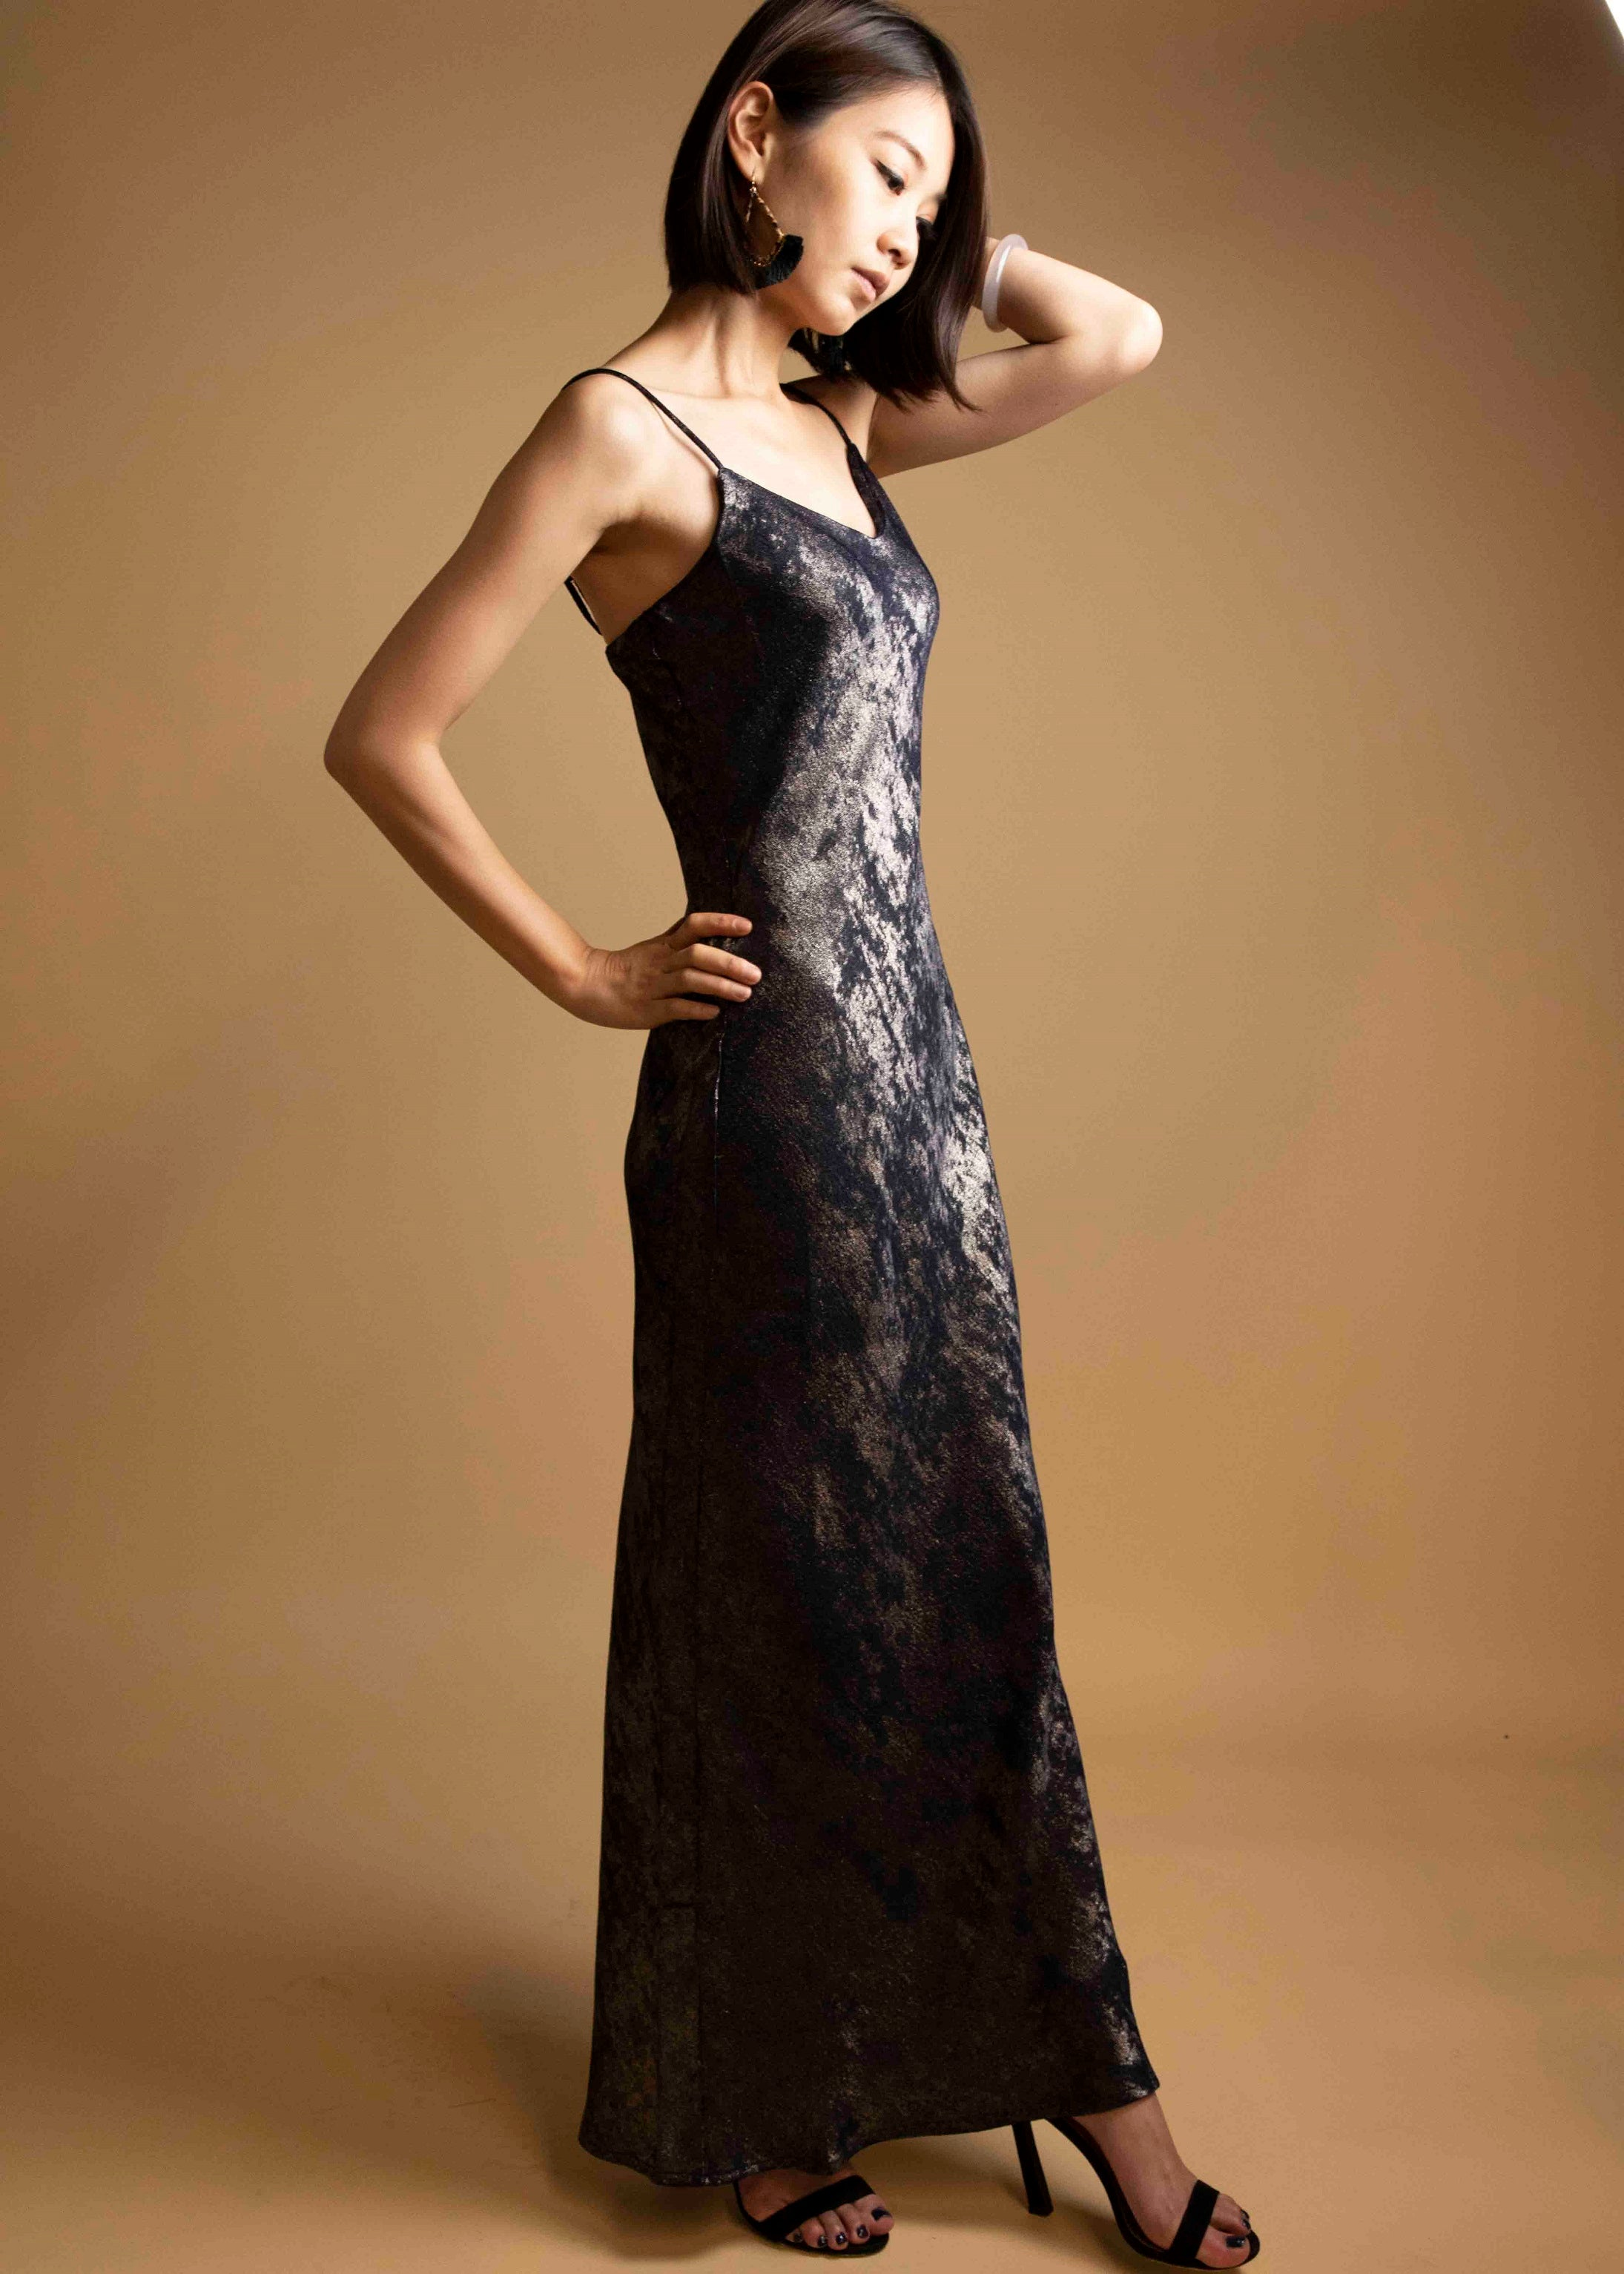 Velvet Metallic Foil Bias Cut Spaghetti Strap Dress